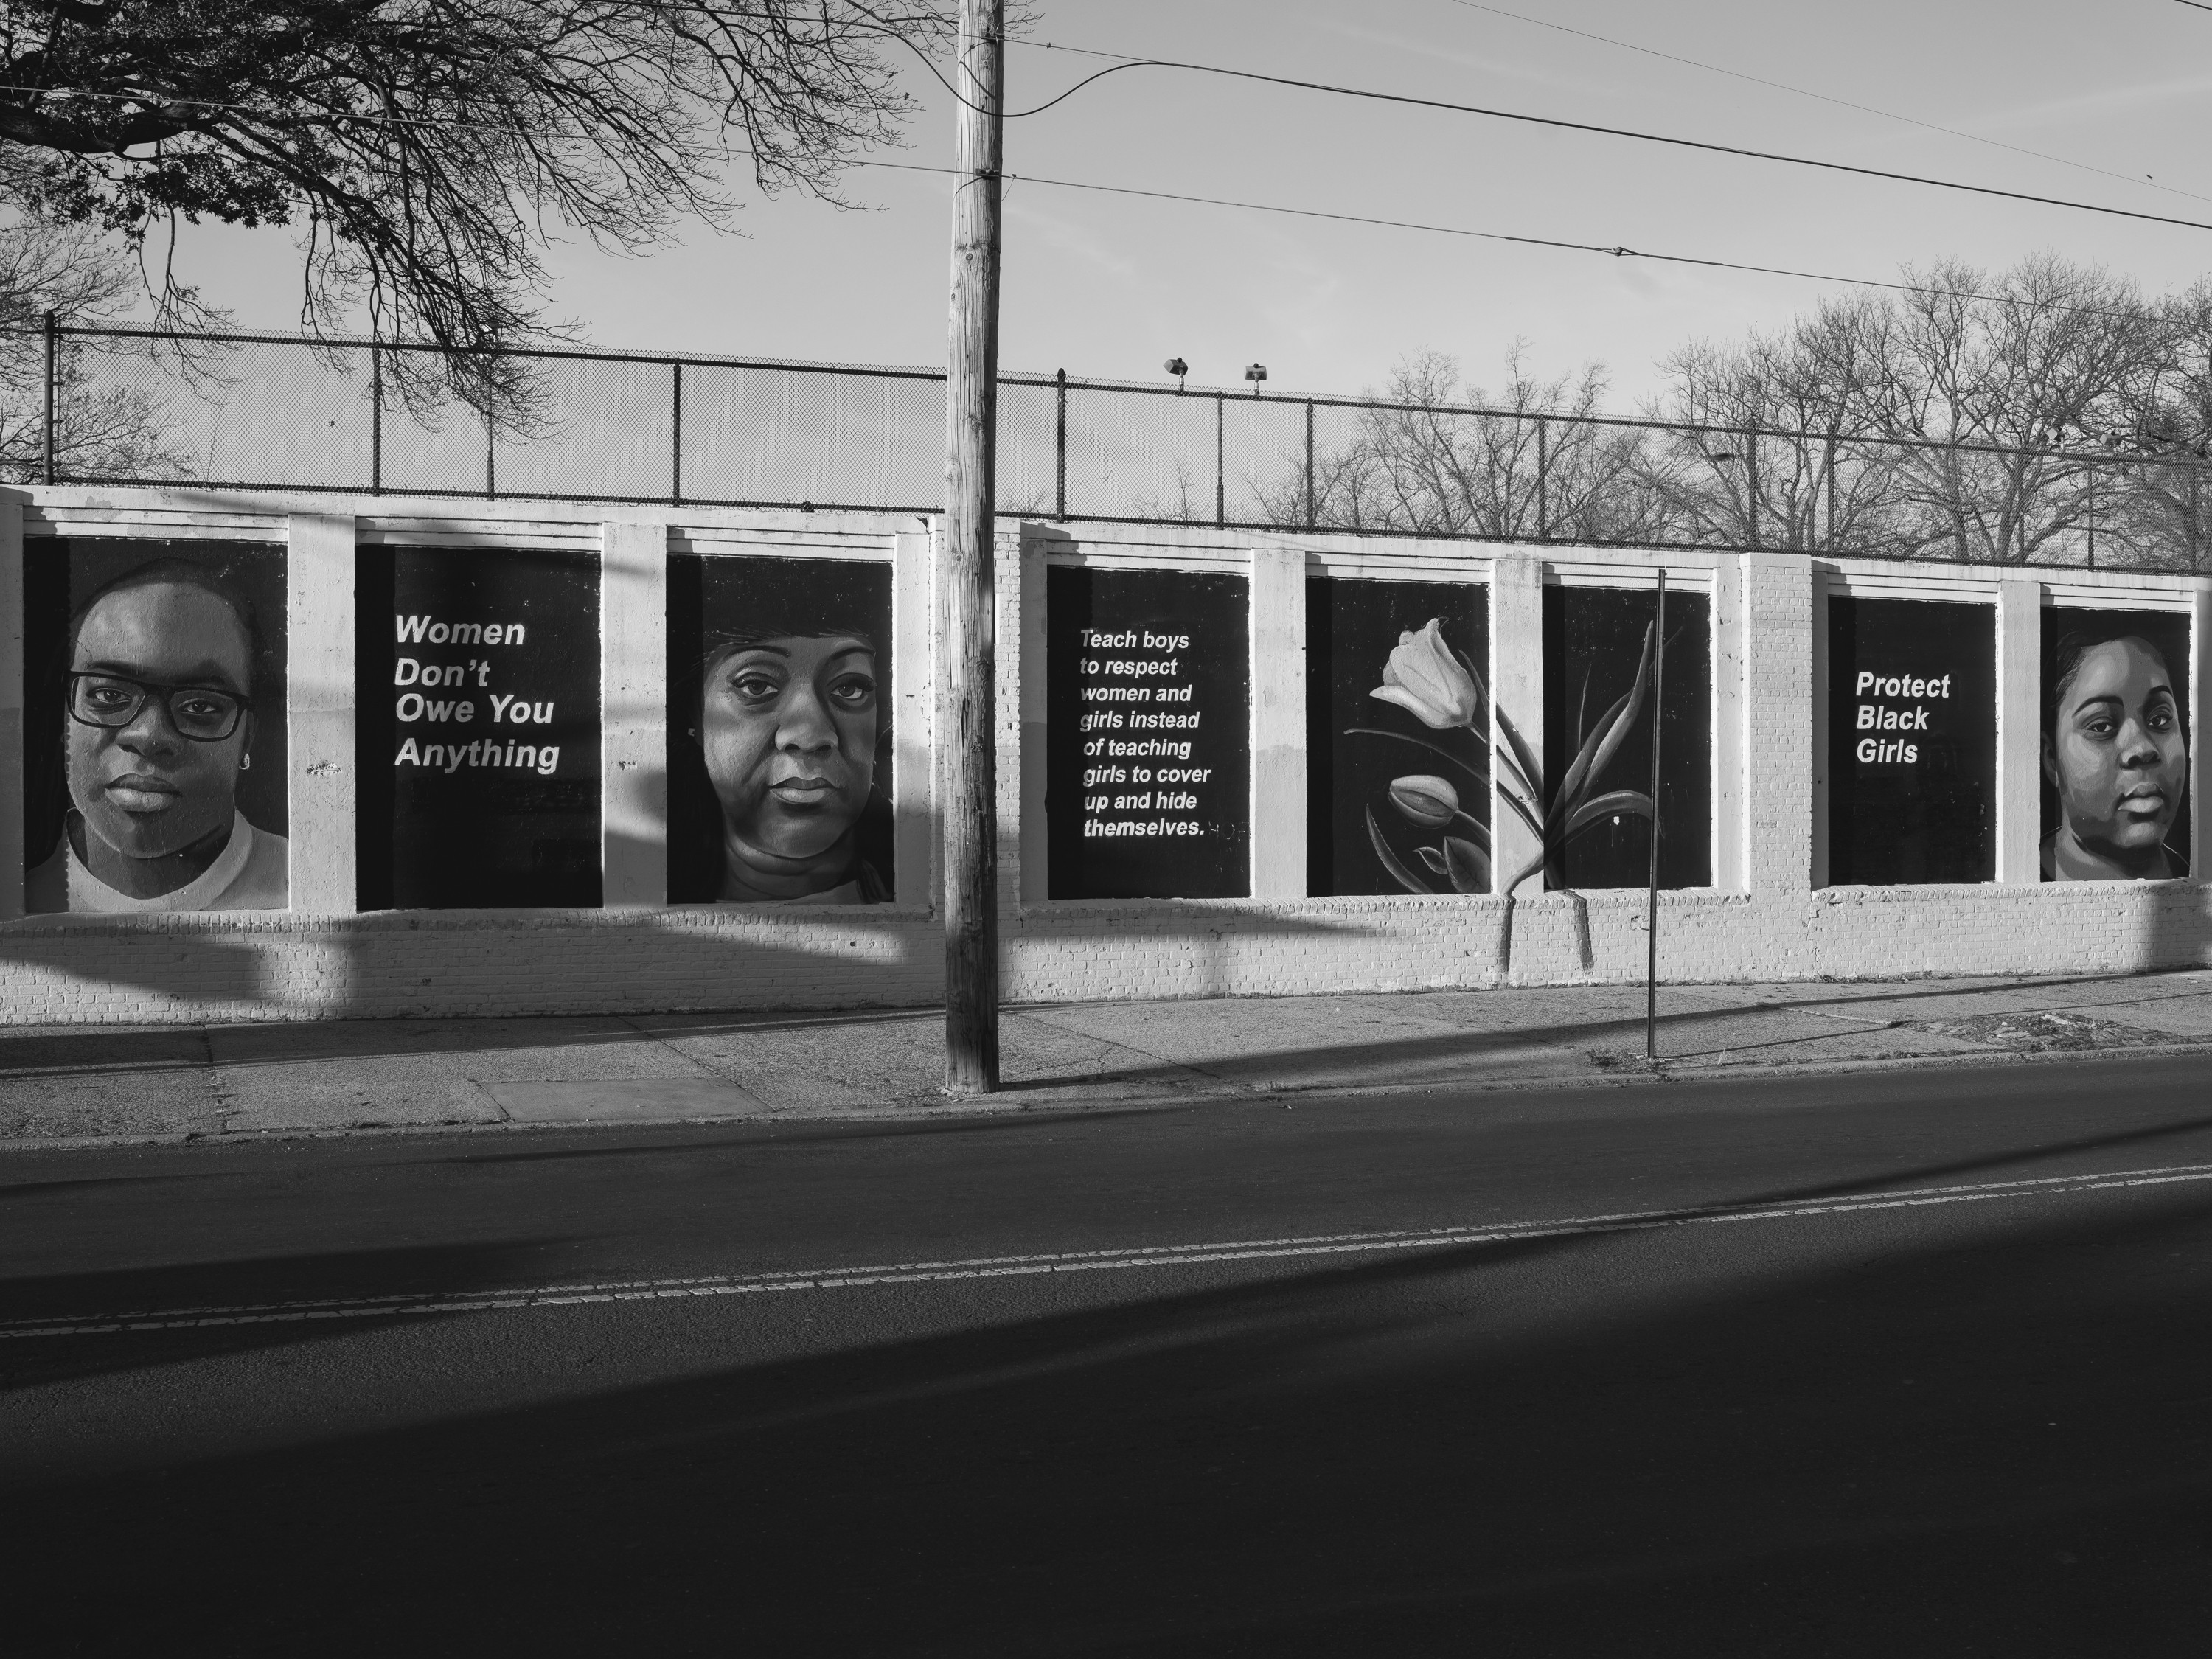 A mural in Queens created by artist Tatyana Fazlalizadeh represents community conversations and faces of Queens-based women.